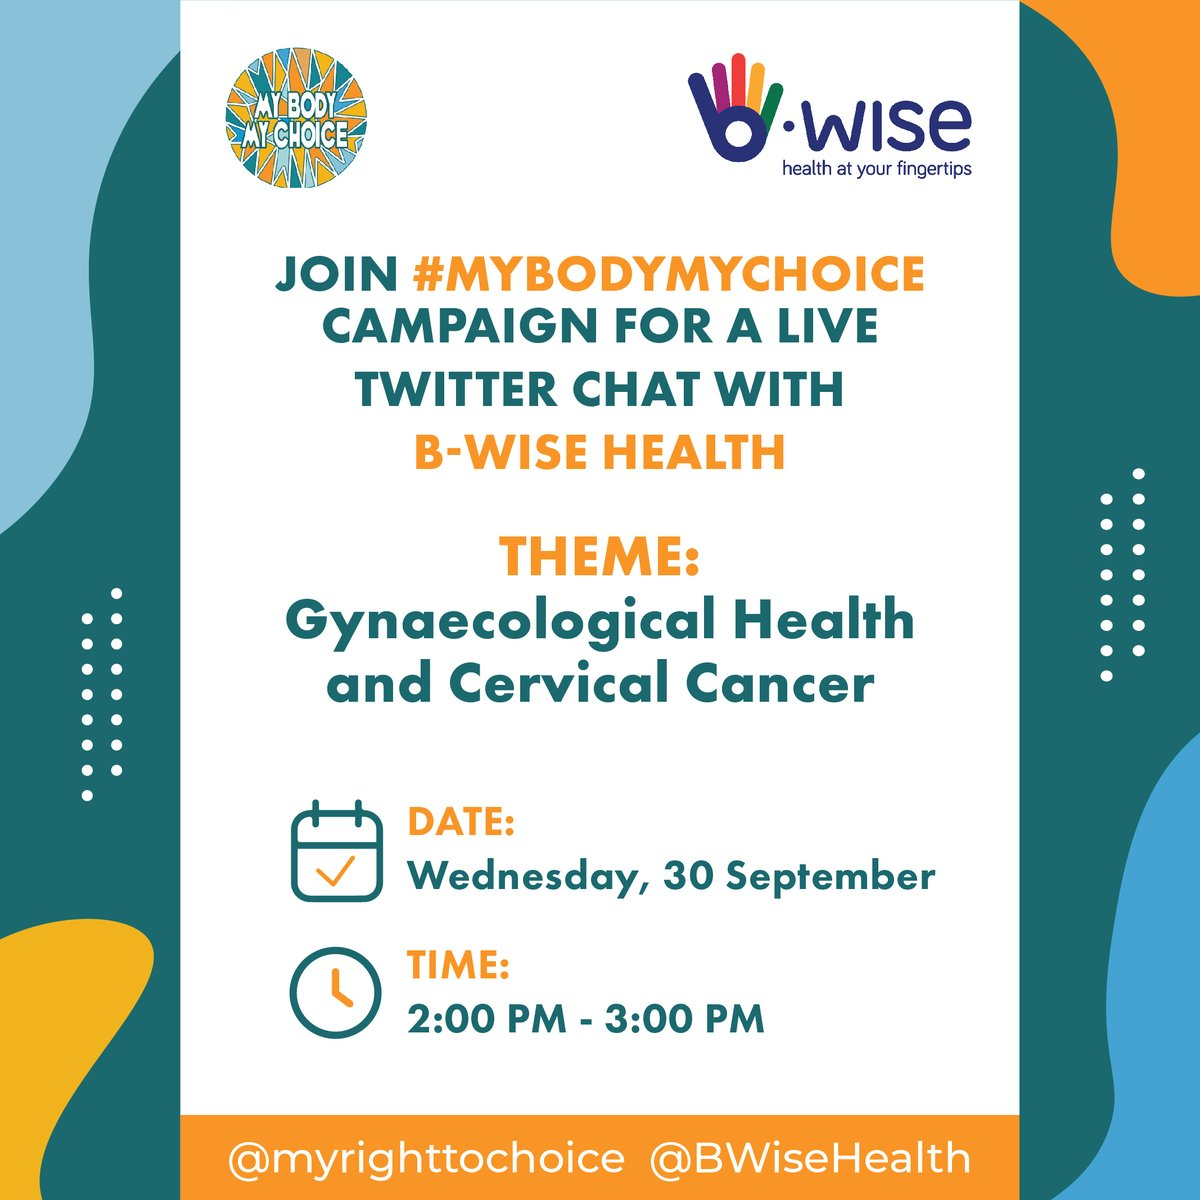 And we are live! Welcome to our Twitter chat. Here are some ground rules before we begin. Please use the hashtags #CervicalCancerMonth and tag @myrighttochoice &  @BWiseHealth in your tweets and responses. https://t.co/P4TPgAwGtA